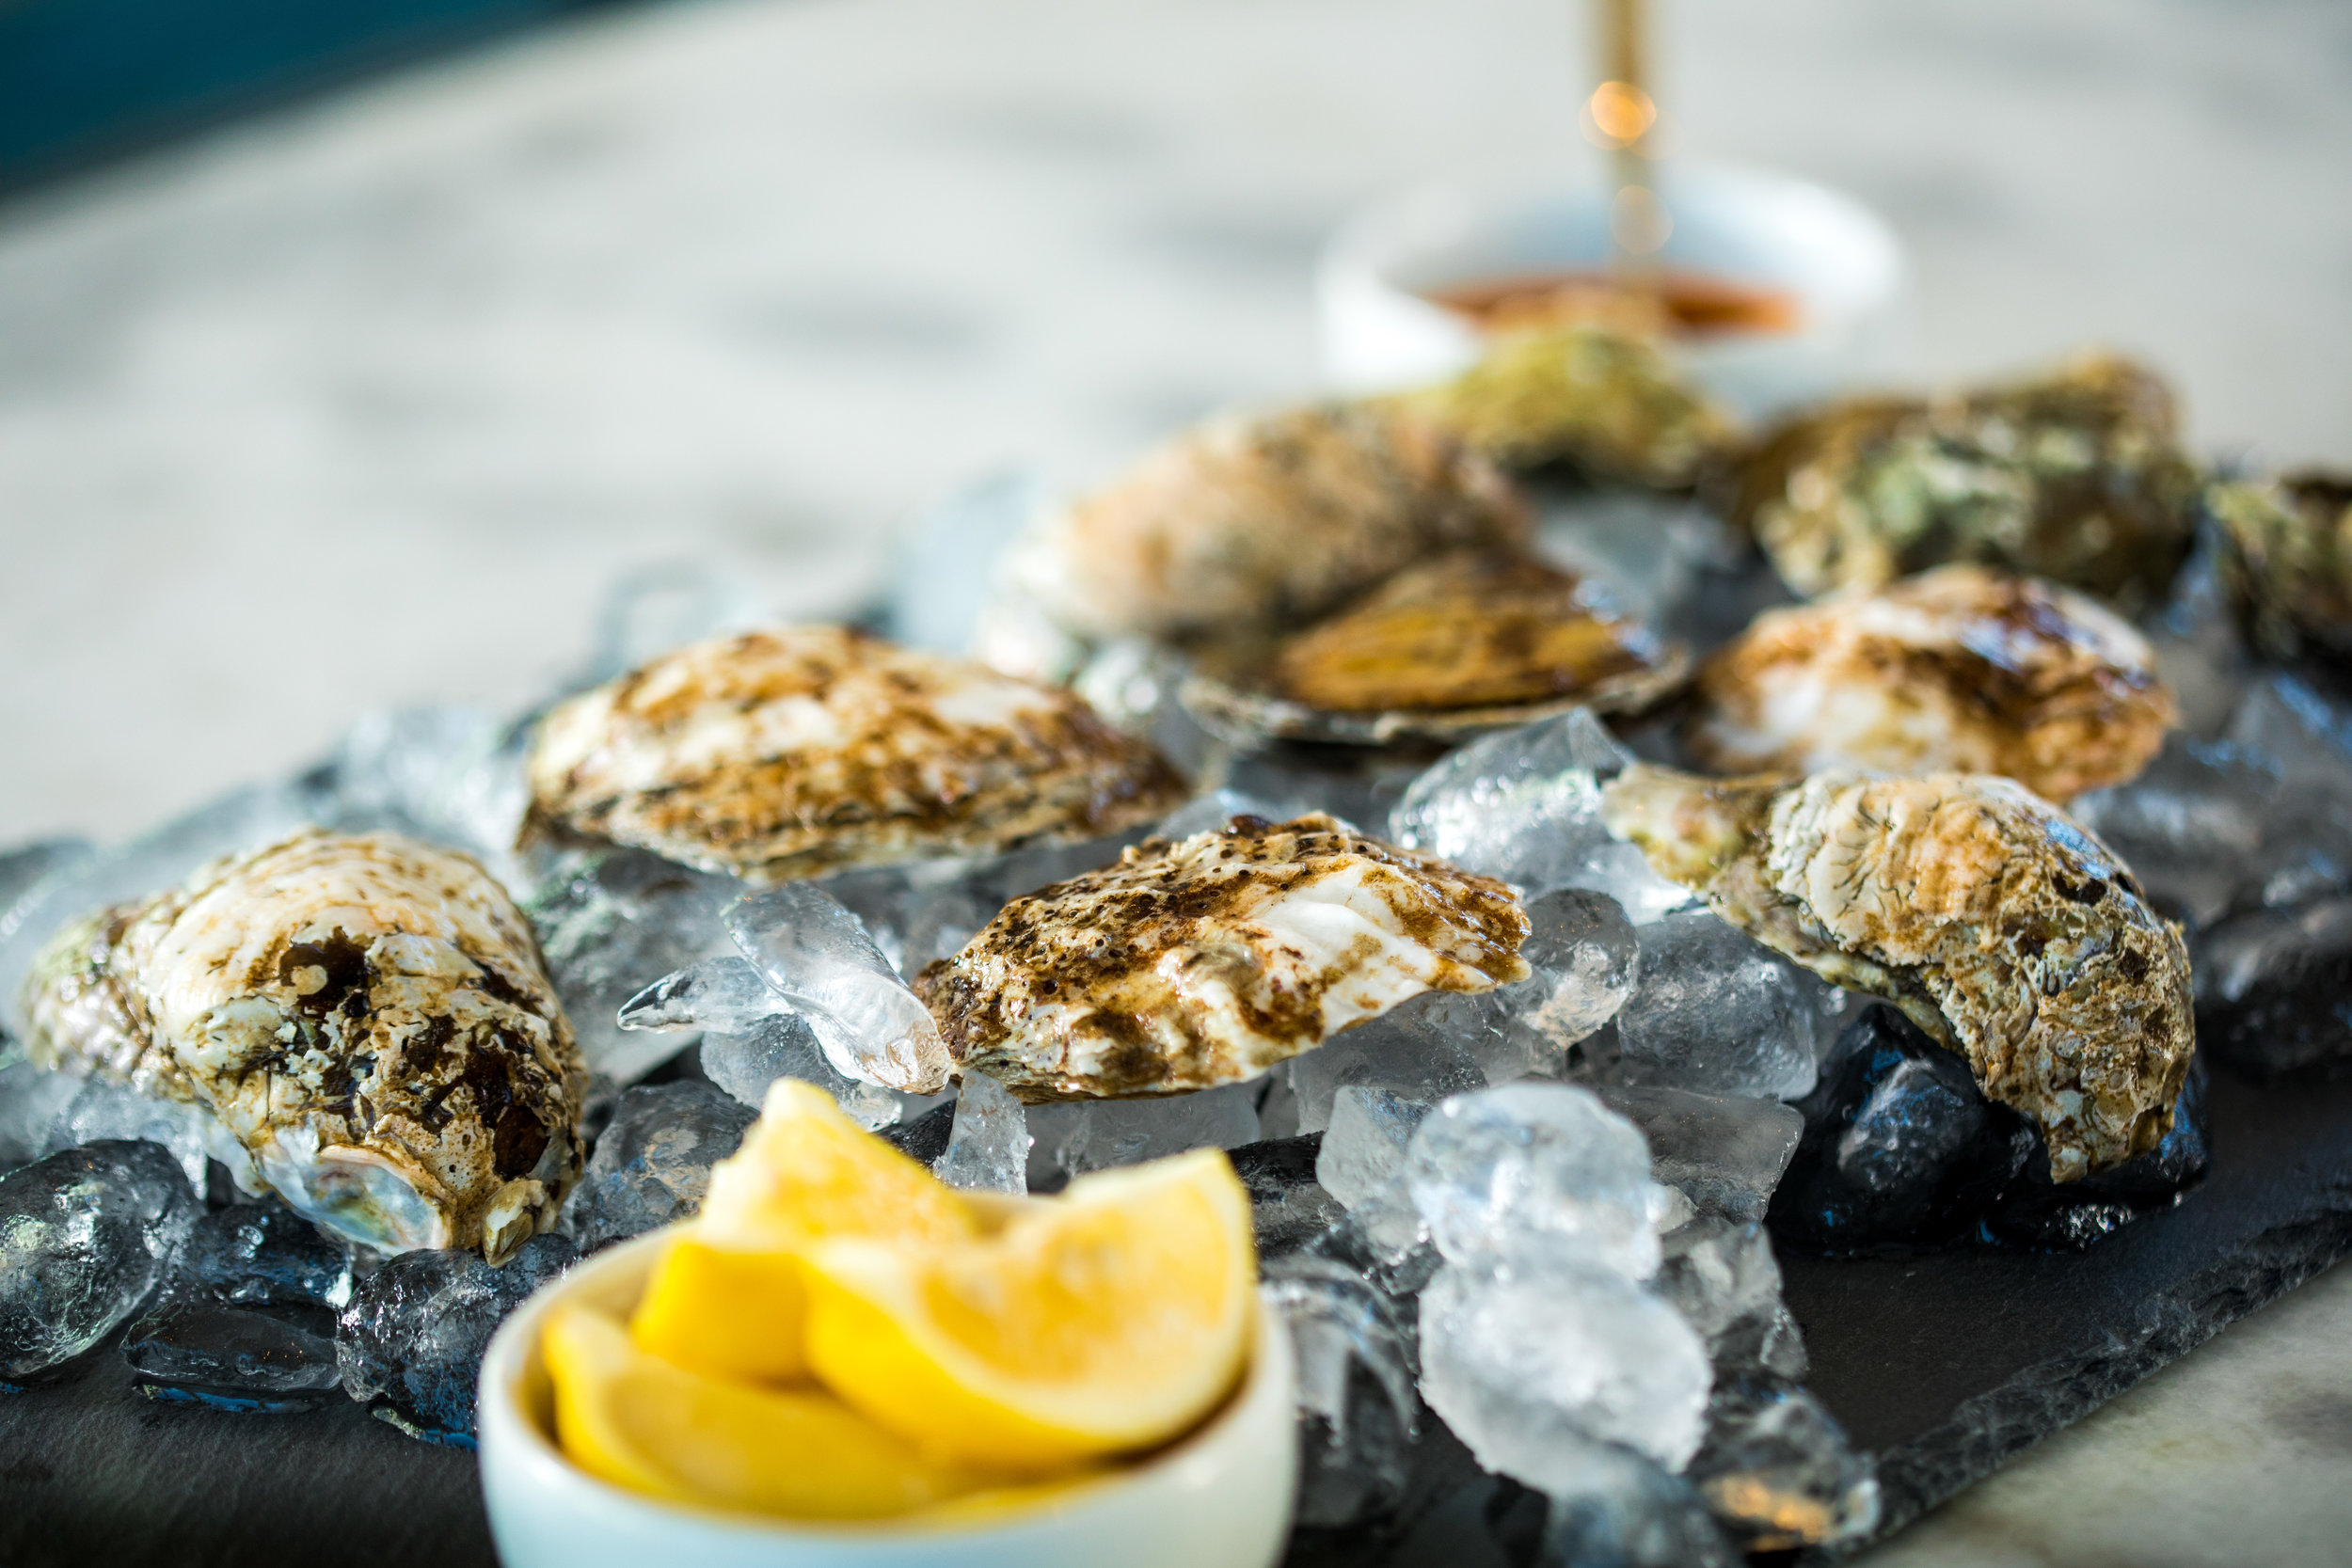 Sauce it up! - Serve a few tasty sauces along with oysters to elevate your raw bar.